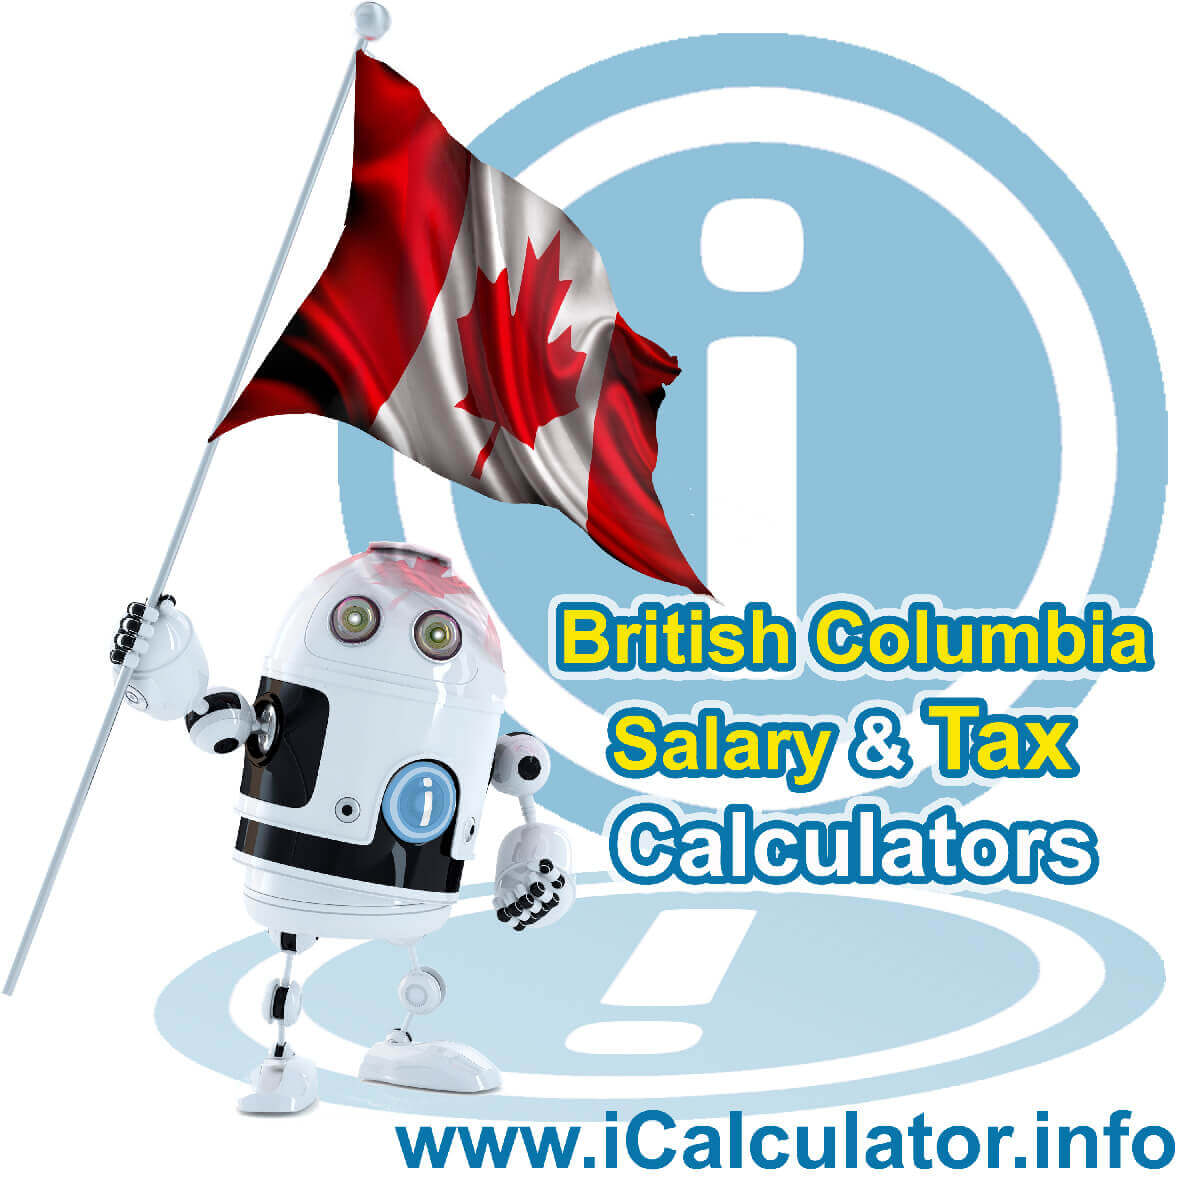 British Columbia 2020 Salary Comparison Calculator. This image shows the British Columbia flag and information relating to the tax formula used in the British Columbia 2020 Salary Comparison Calculator